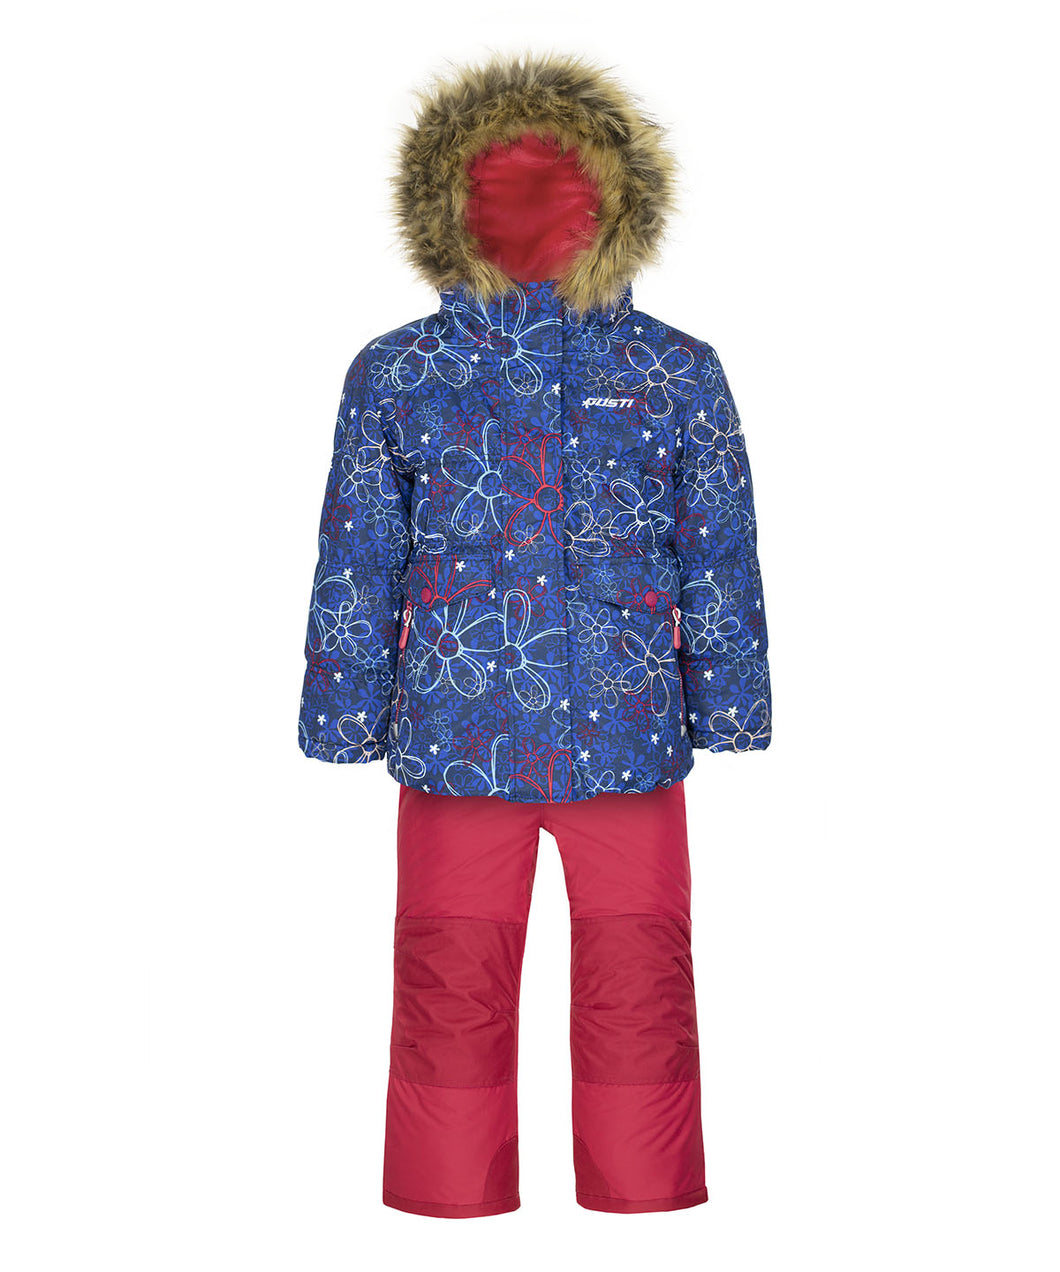 ANY - Estate Blue - Girls Jacket and Snow Pant Set